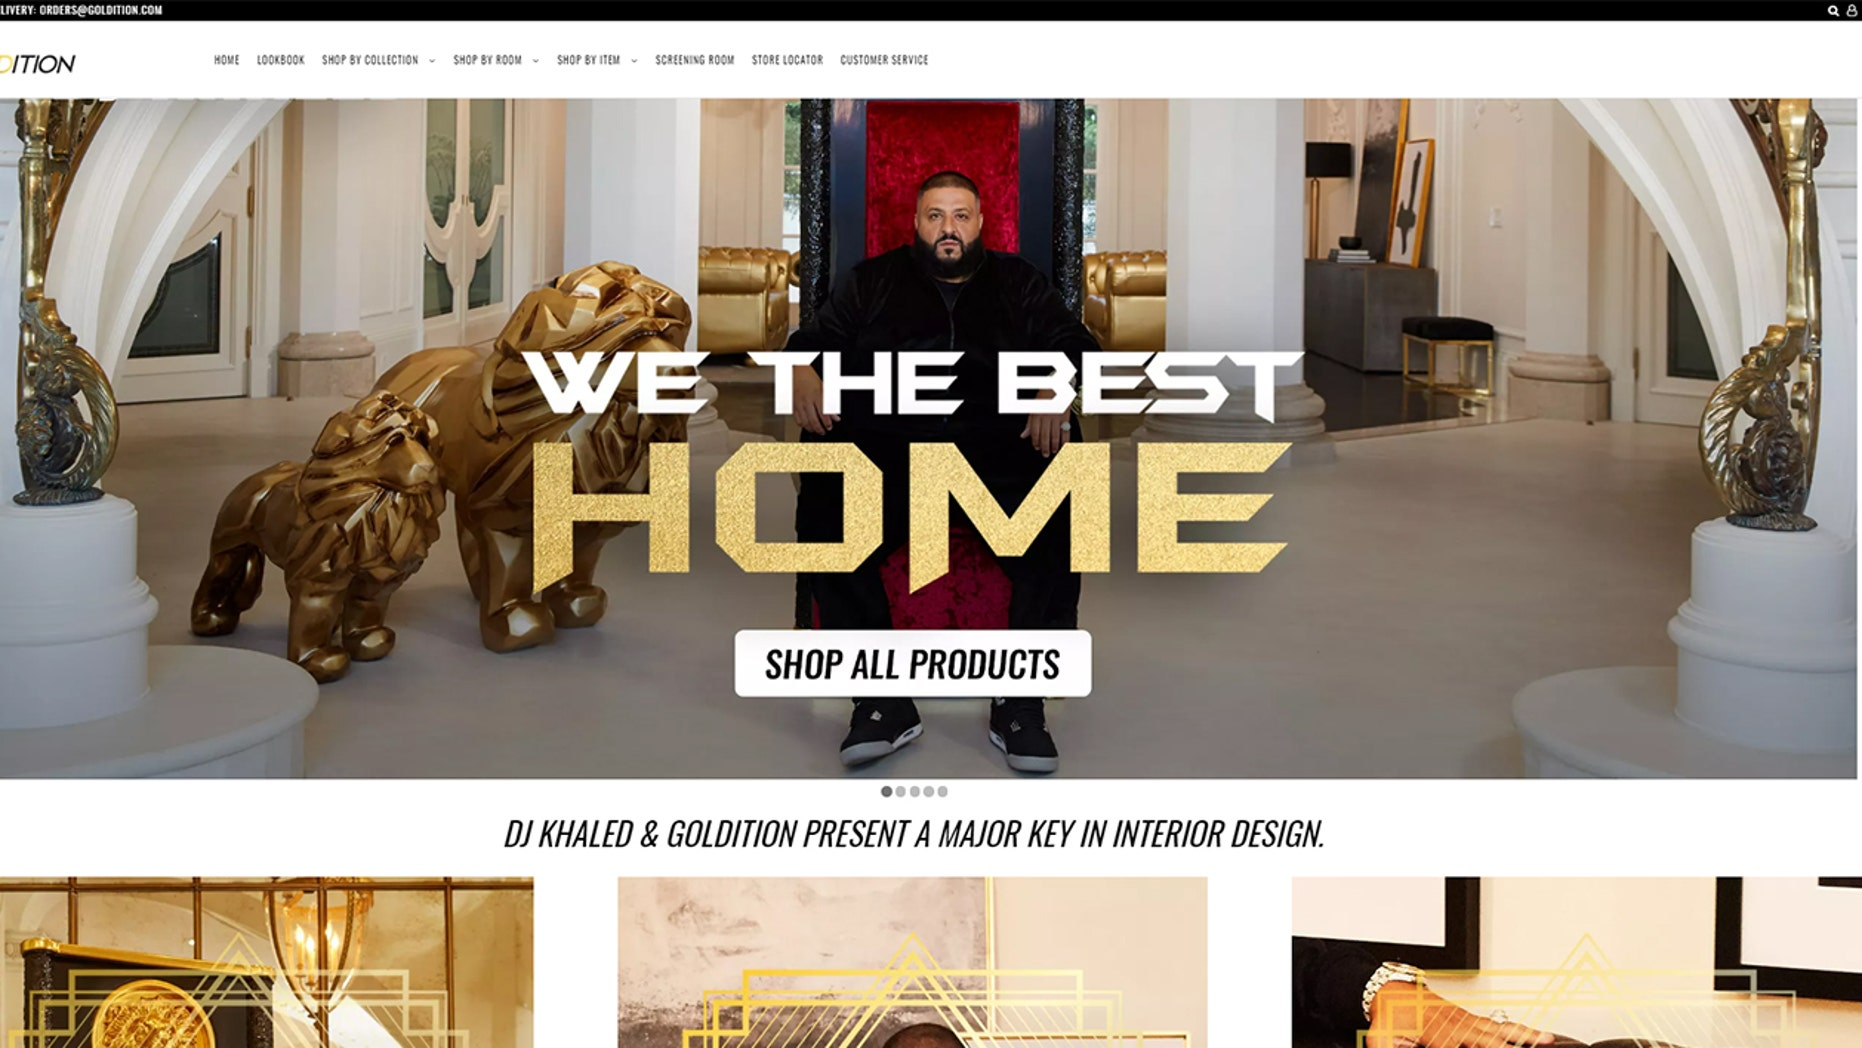 The first offerings from DJ Khaled's We the Best Home furnishings collection are currently available for purchase.